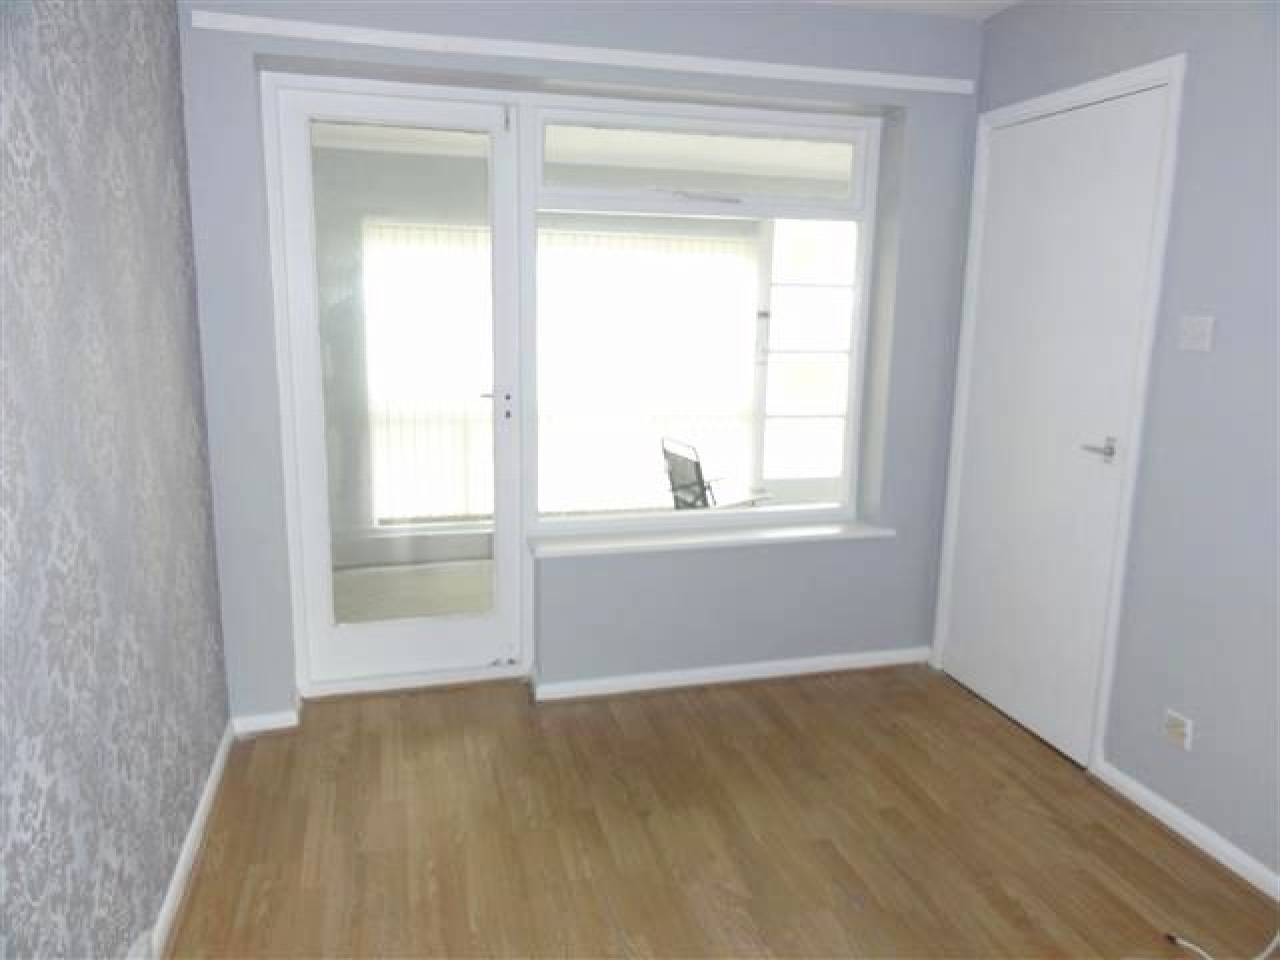 Image 1 of 1 of Dining Room, on Accommodation Comprising for